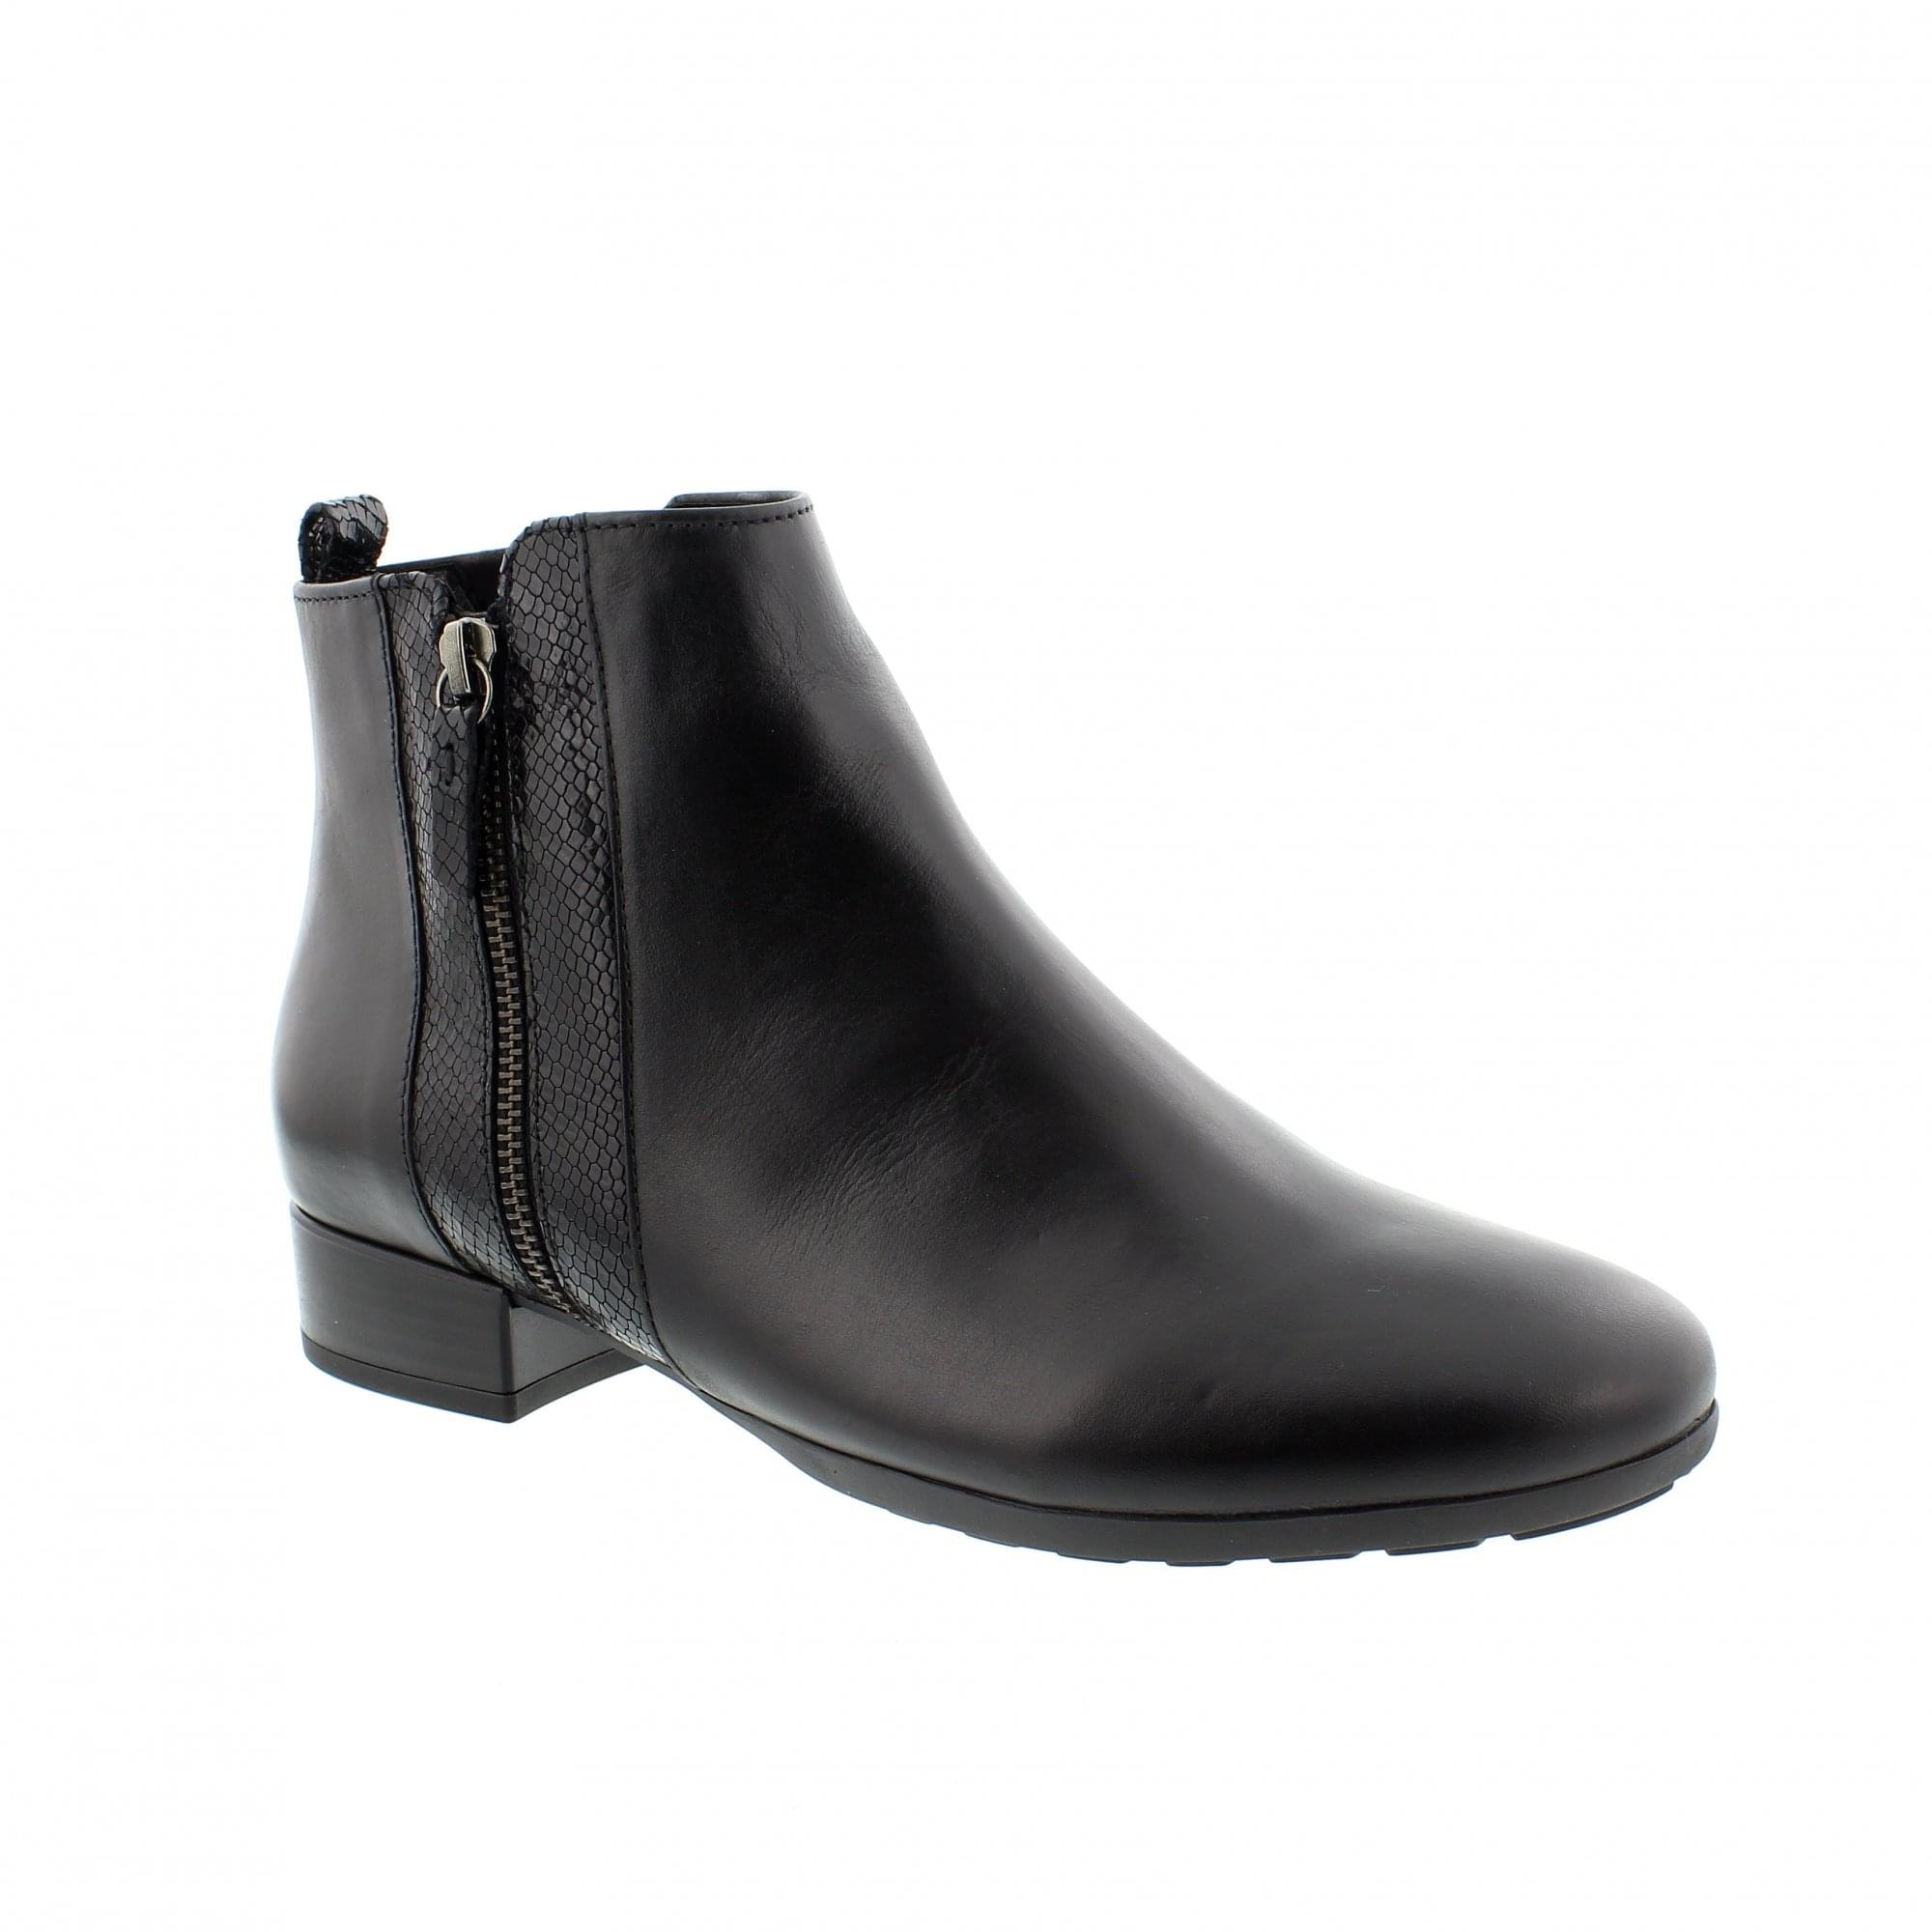 25a106558610f5 Gabor Rundle 72-713-37 Womens Ankle Boots